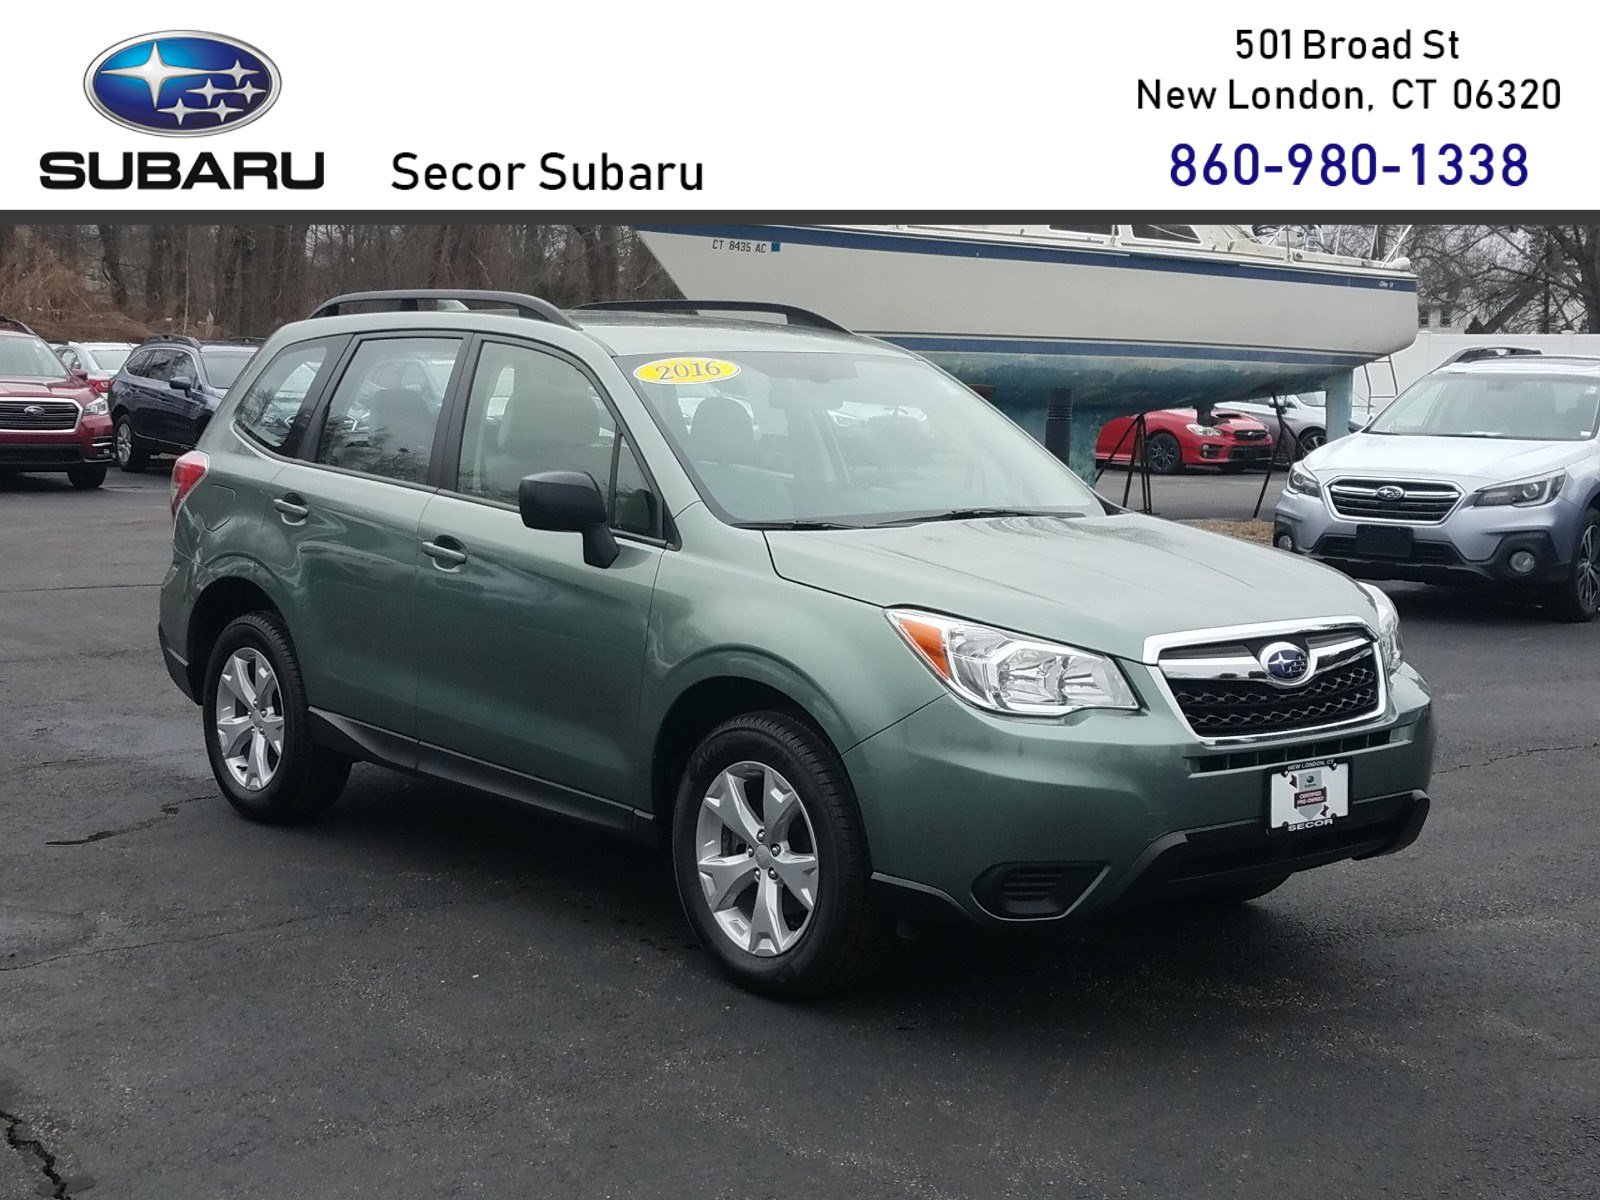 2016 Used Subaru Forester 2 5i For Sale New London CT Vin: JF2SJABC9GH462671